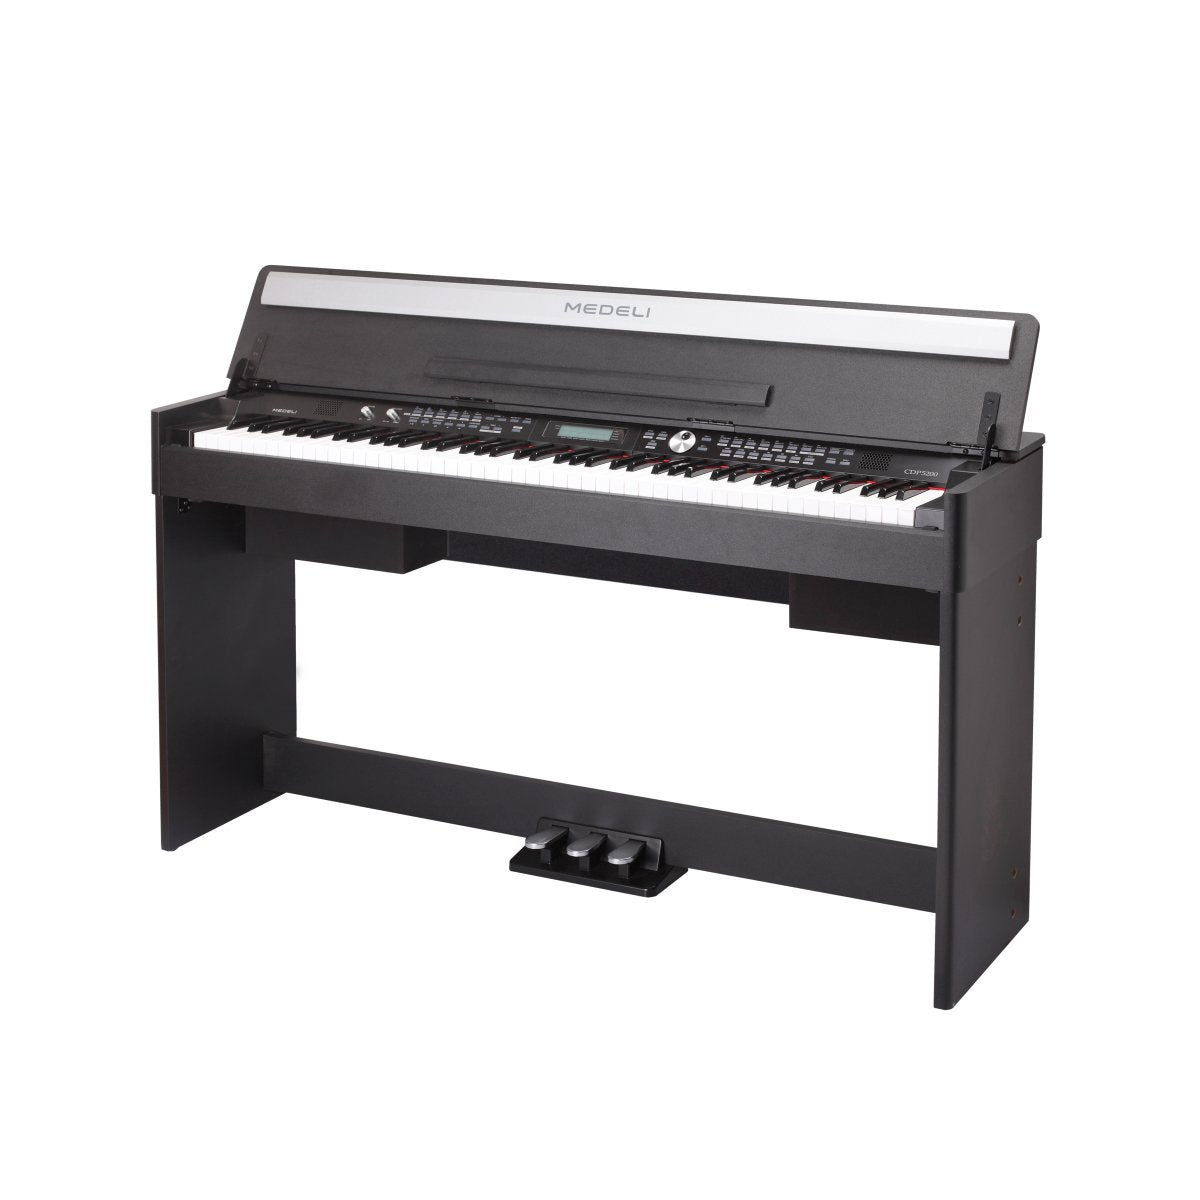 Medeli CDP5200 Digital Piano